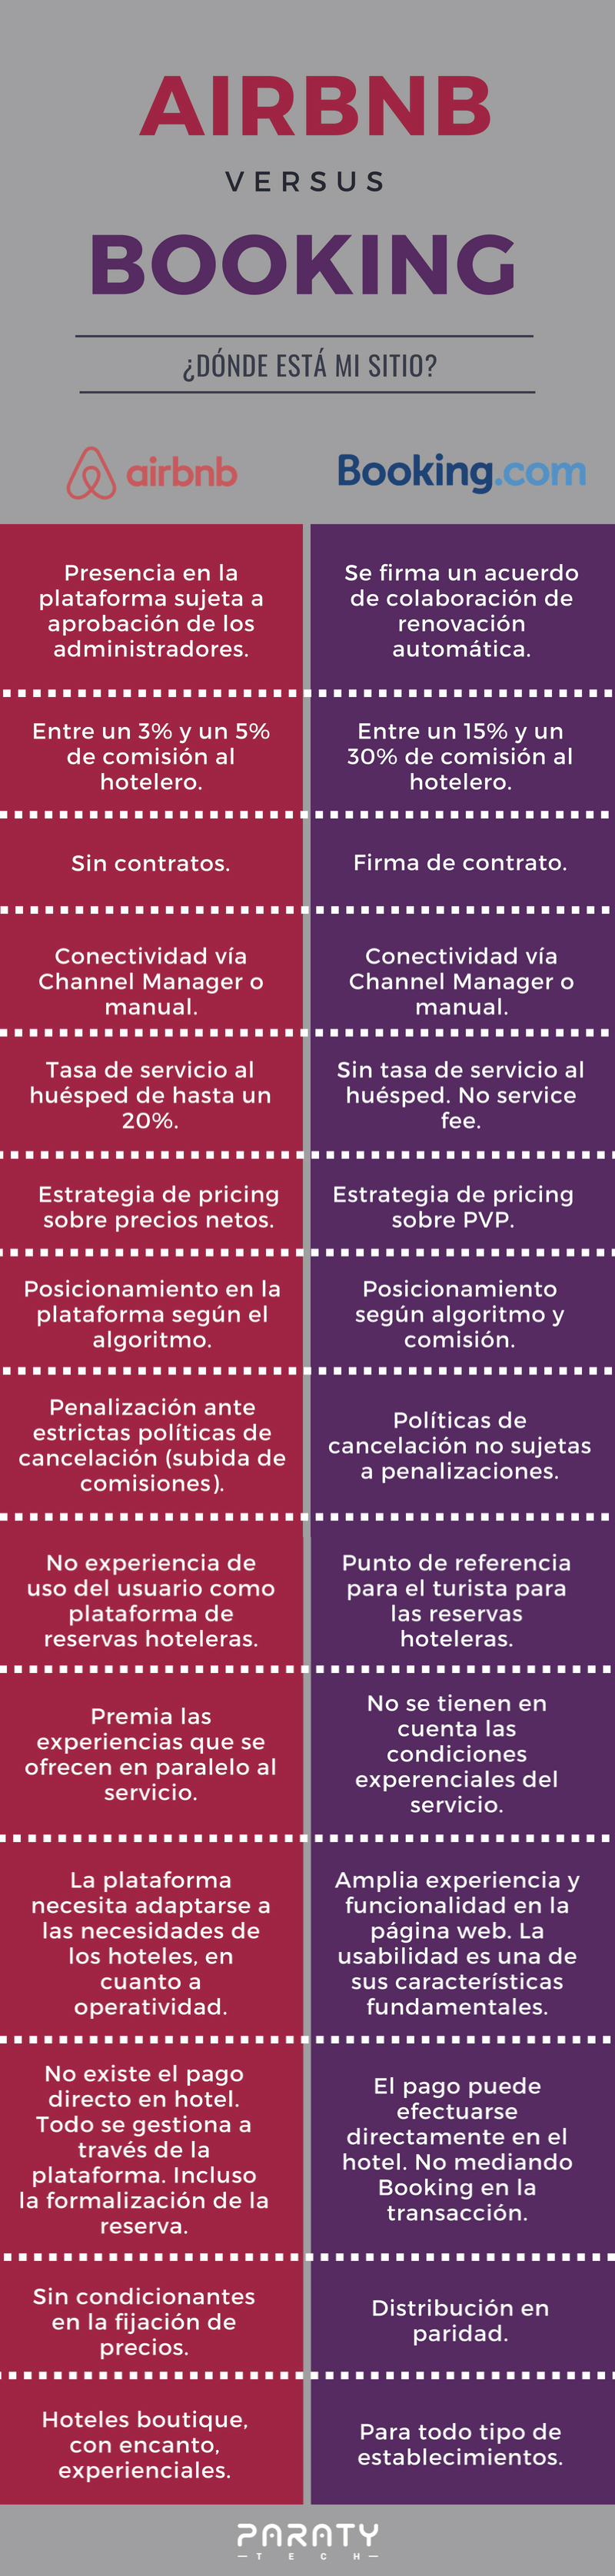 Infografía Airbnb vs Booking (2)